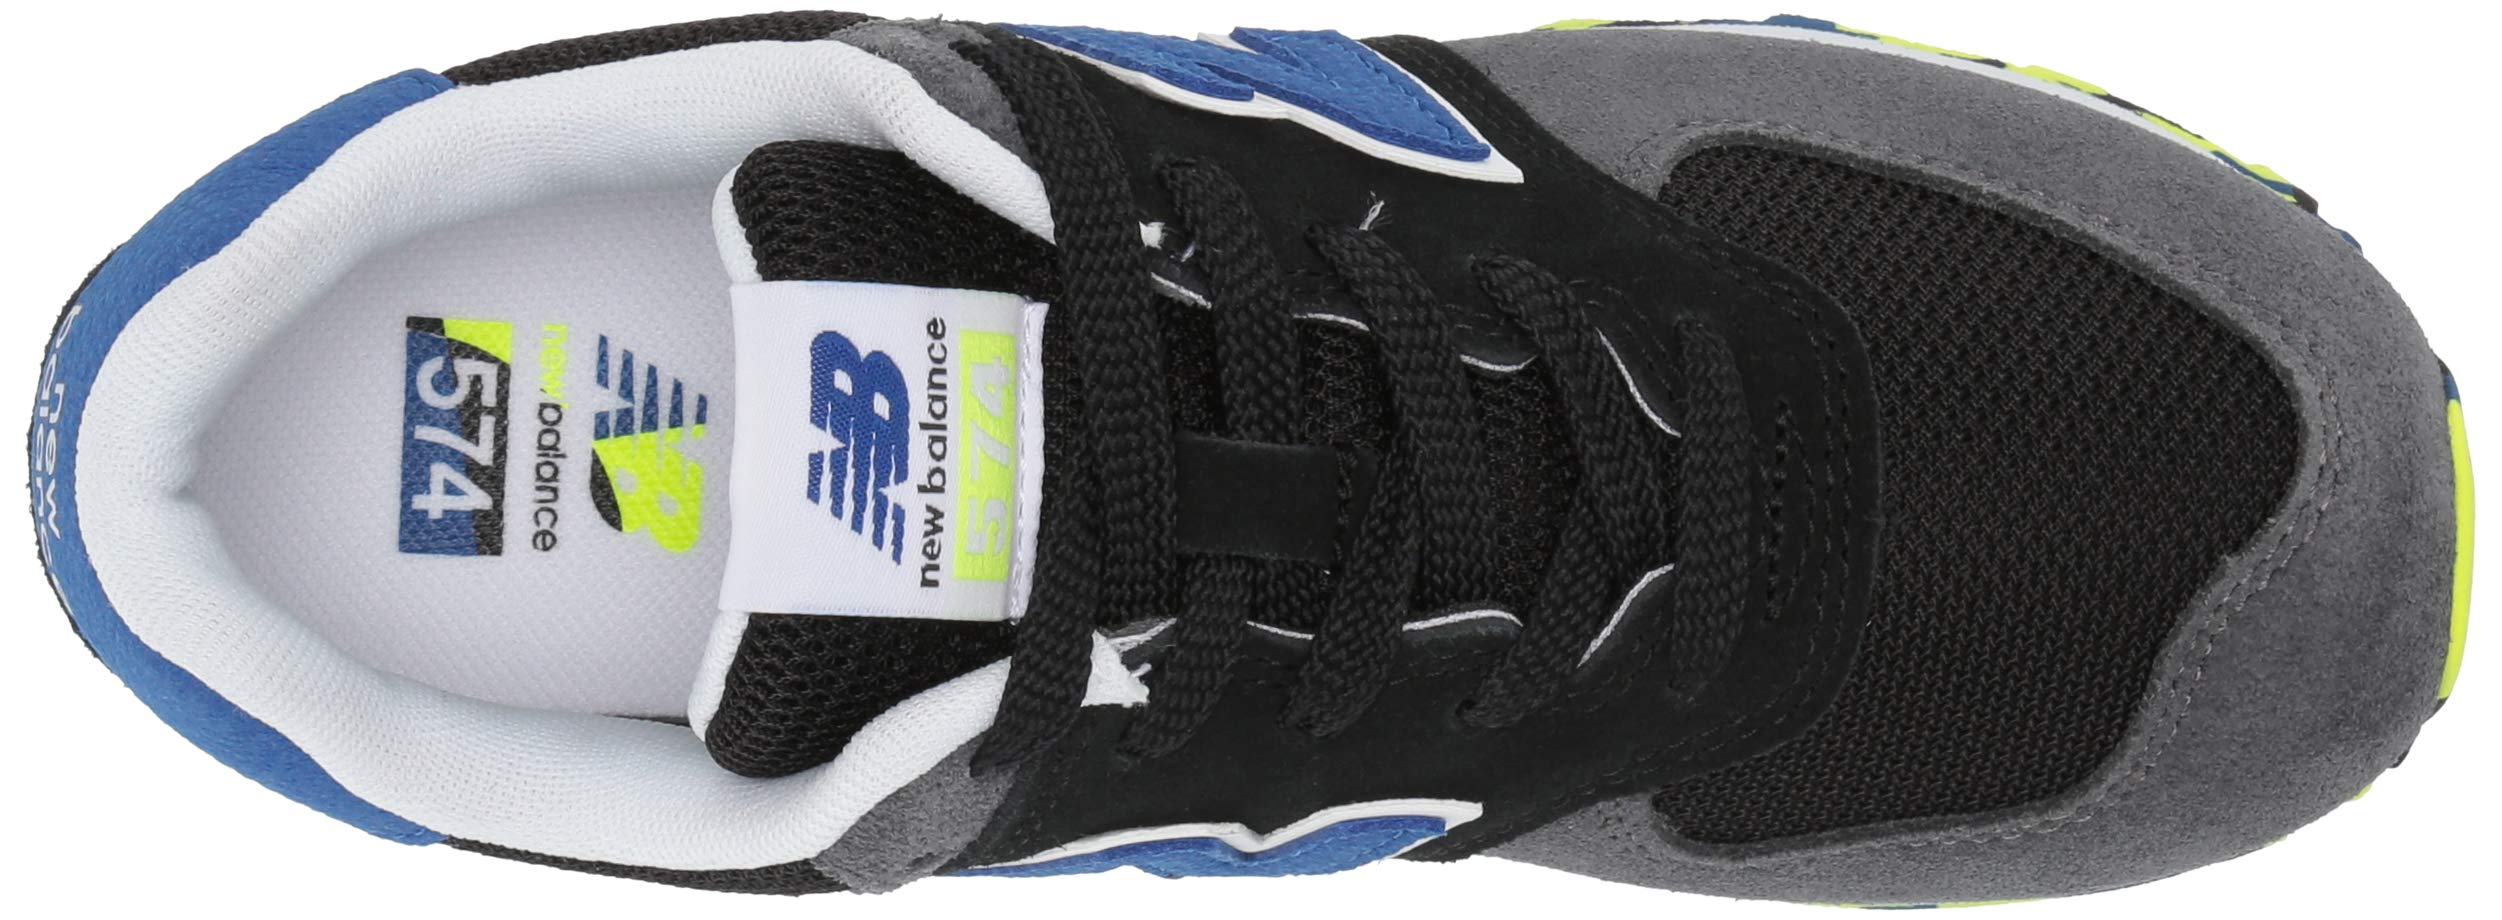 New Balance Boys' Iconic 574 Sneaker Black/Royal Blue 4.5 M US Big Kid by New Balance (Image #8)